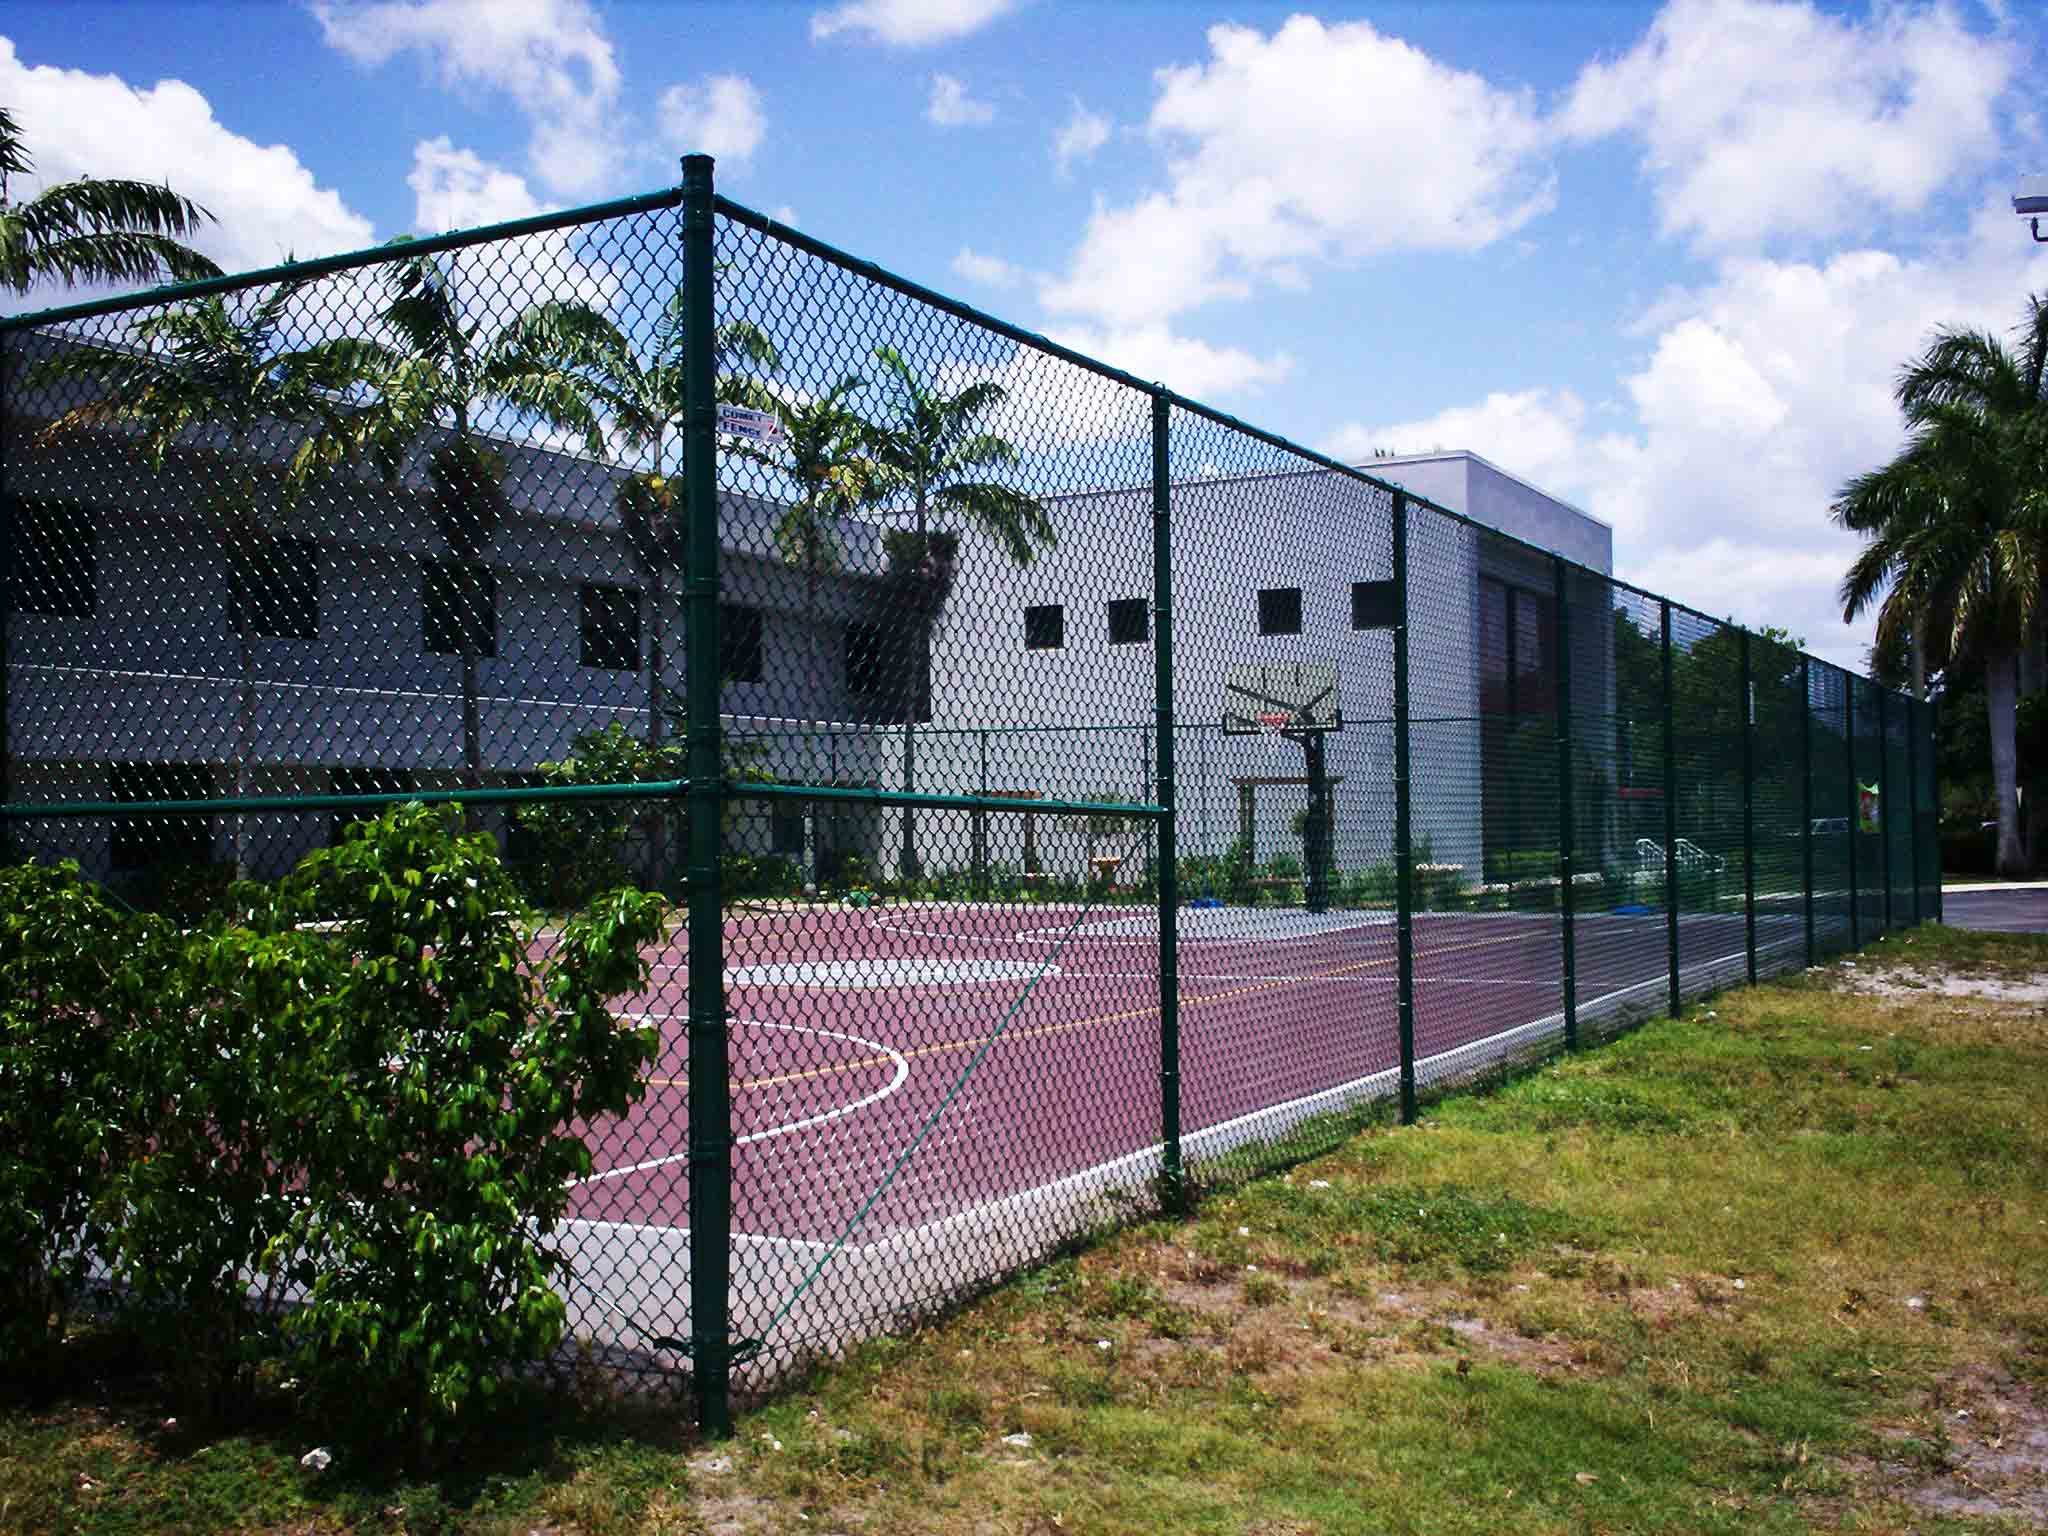 Tennis Court with green fencing